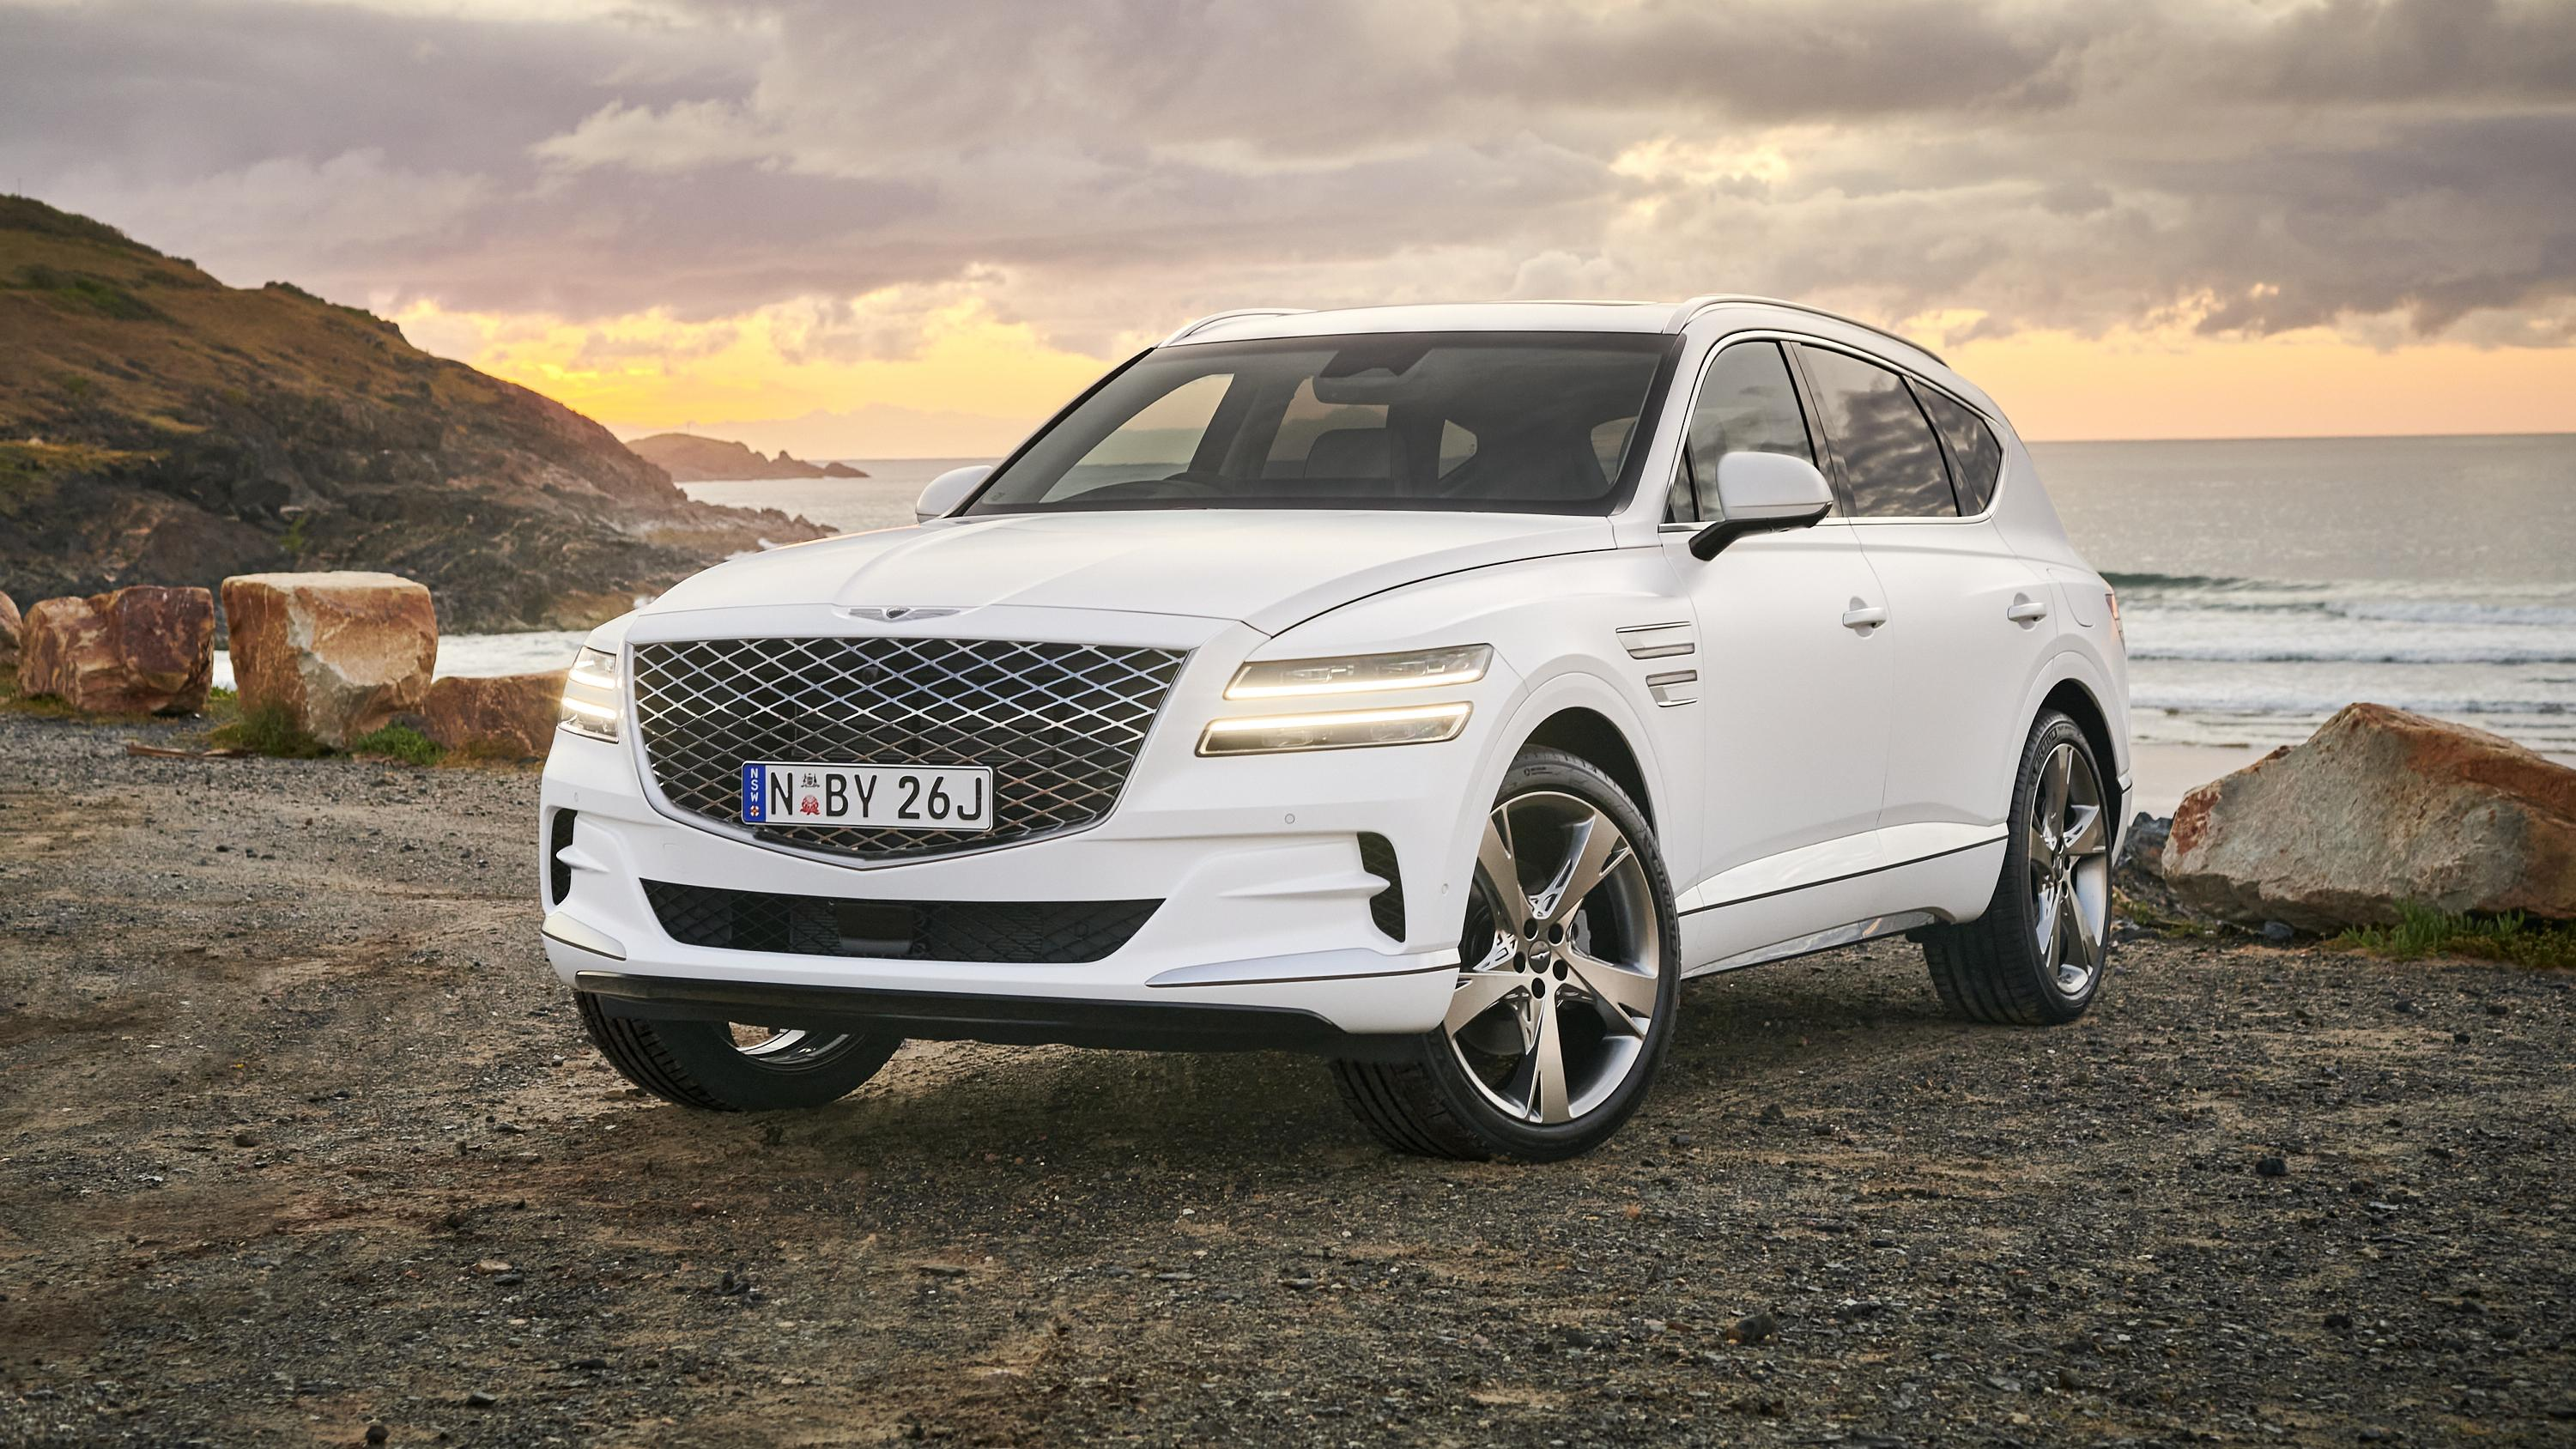 2022 Genesis GV80 to get six-seat option, unconfirmed for Australia